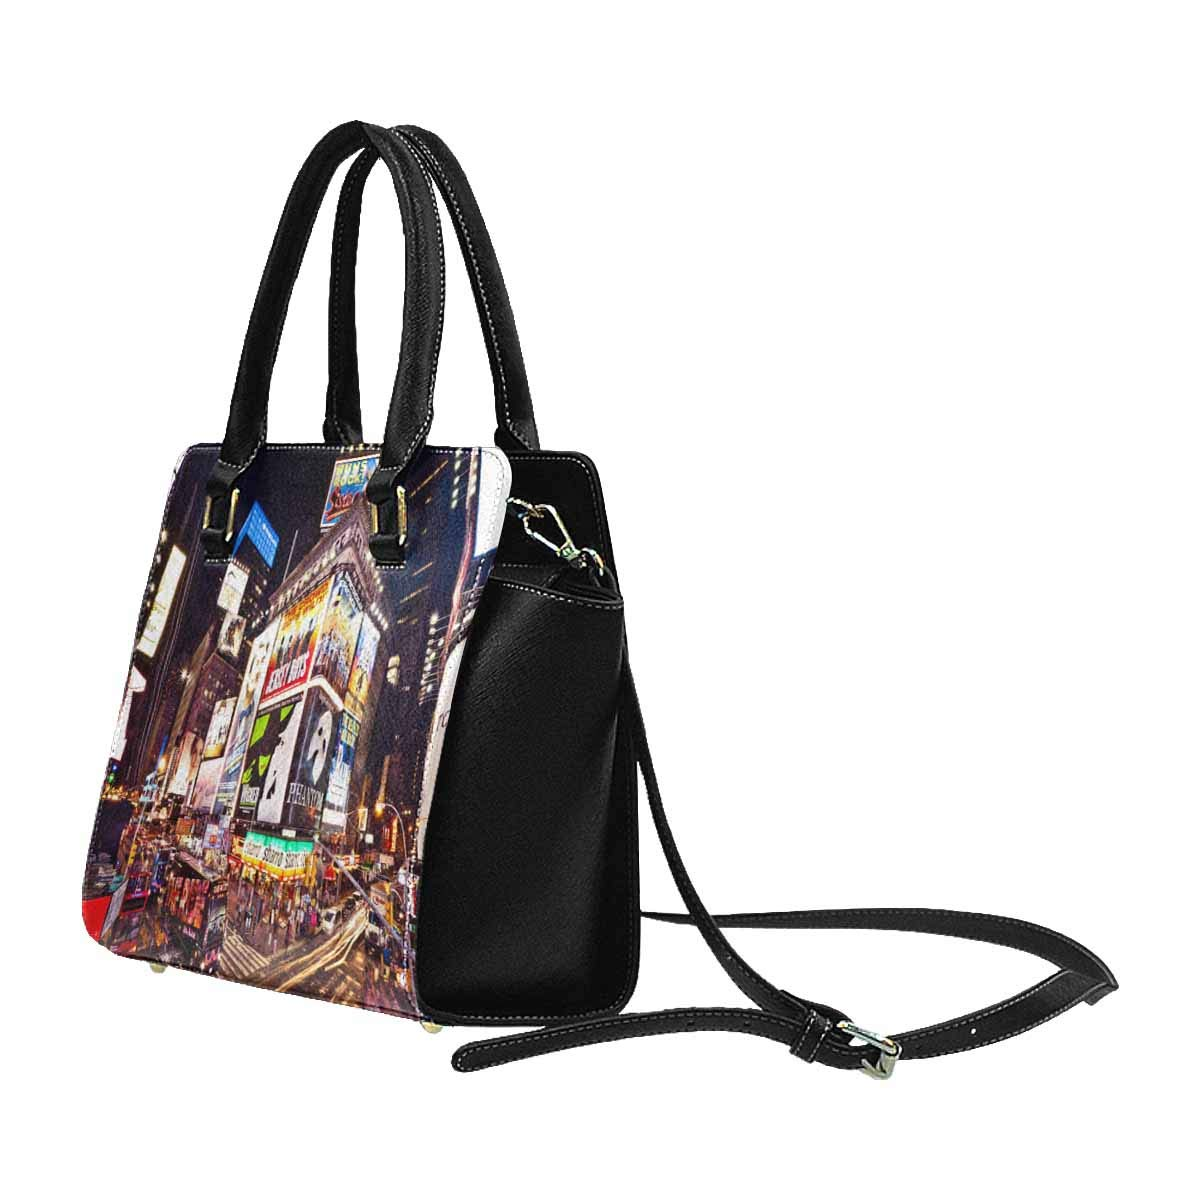 InterestPrint Womens New York City Theme Rivet Shoulder Handbag Shoulder Bags